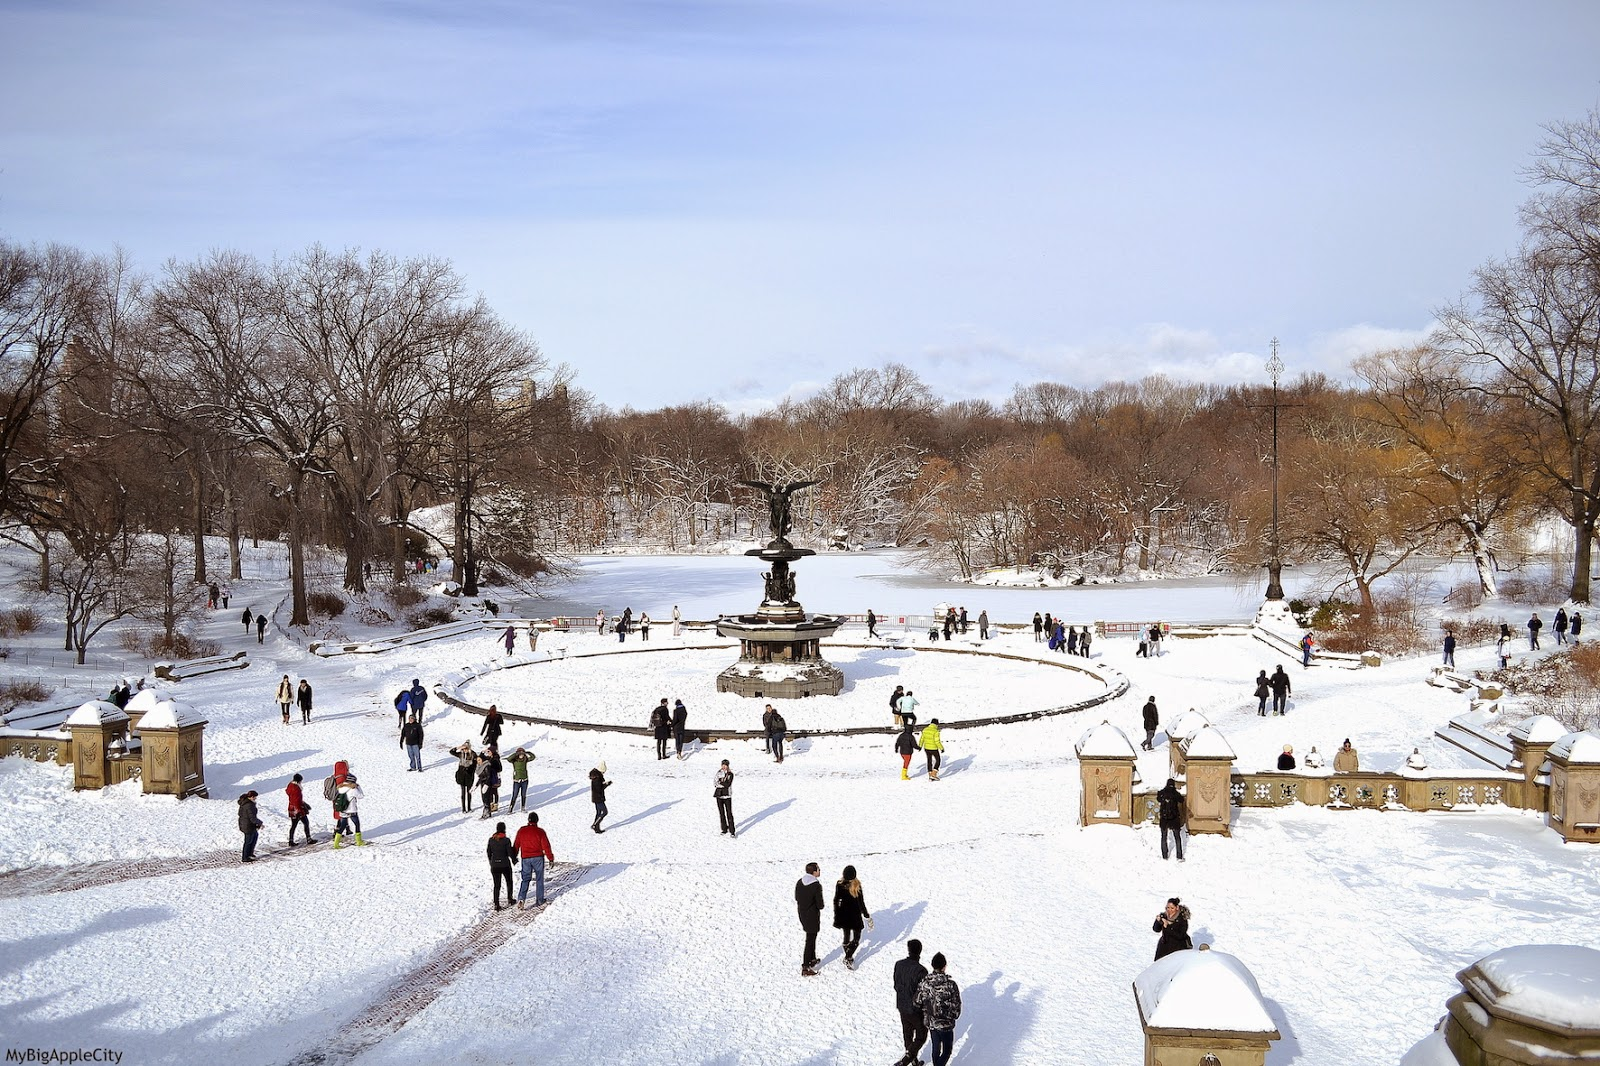 juno-2015-NYC-Blizzard-CentralPark-travel-blog